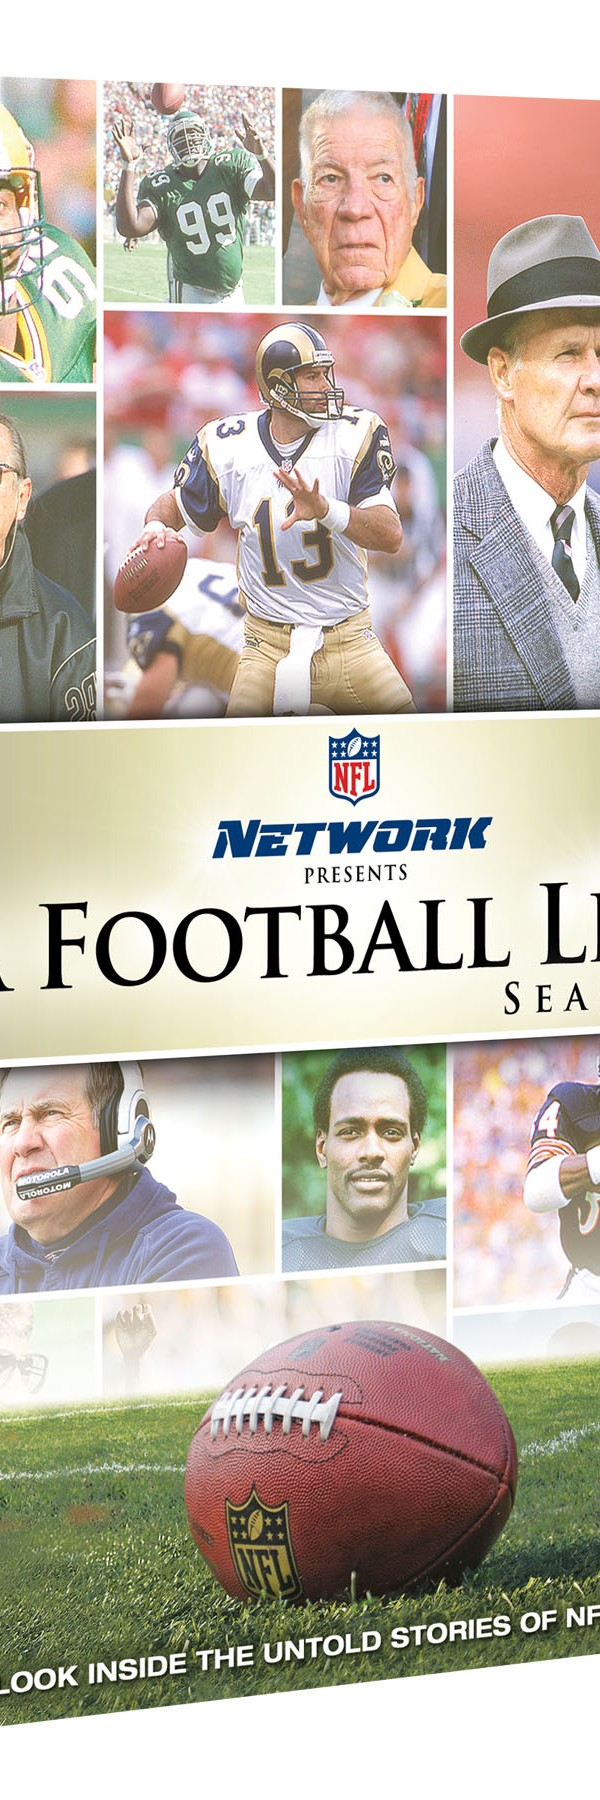 Your chance to have 'A FootballLife'